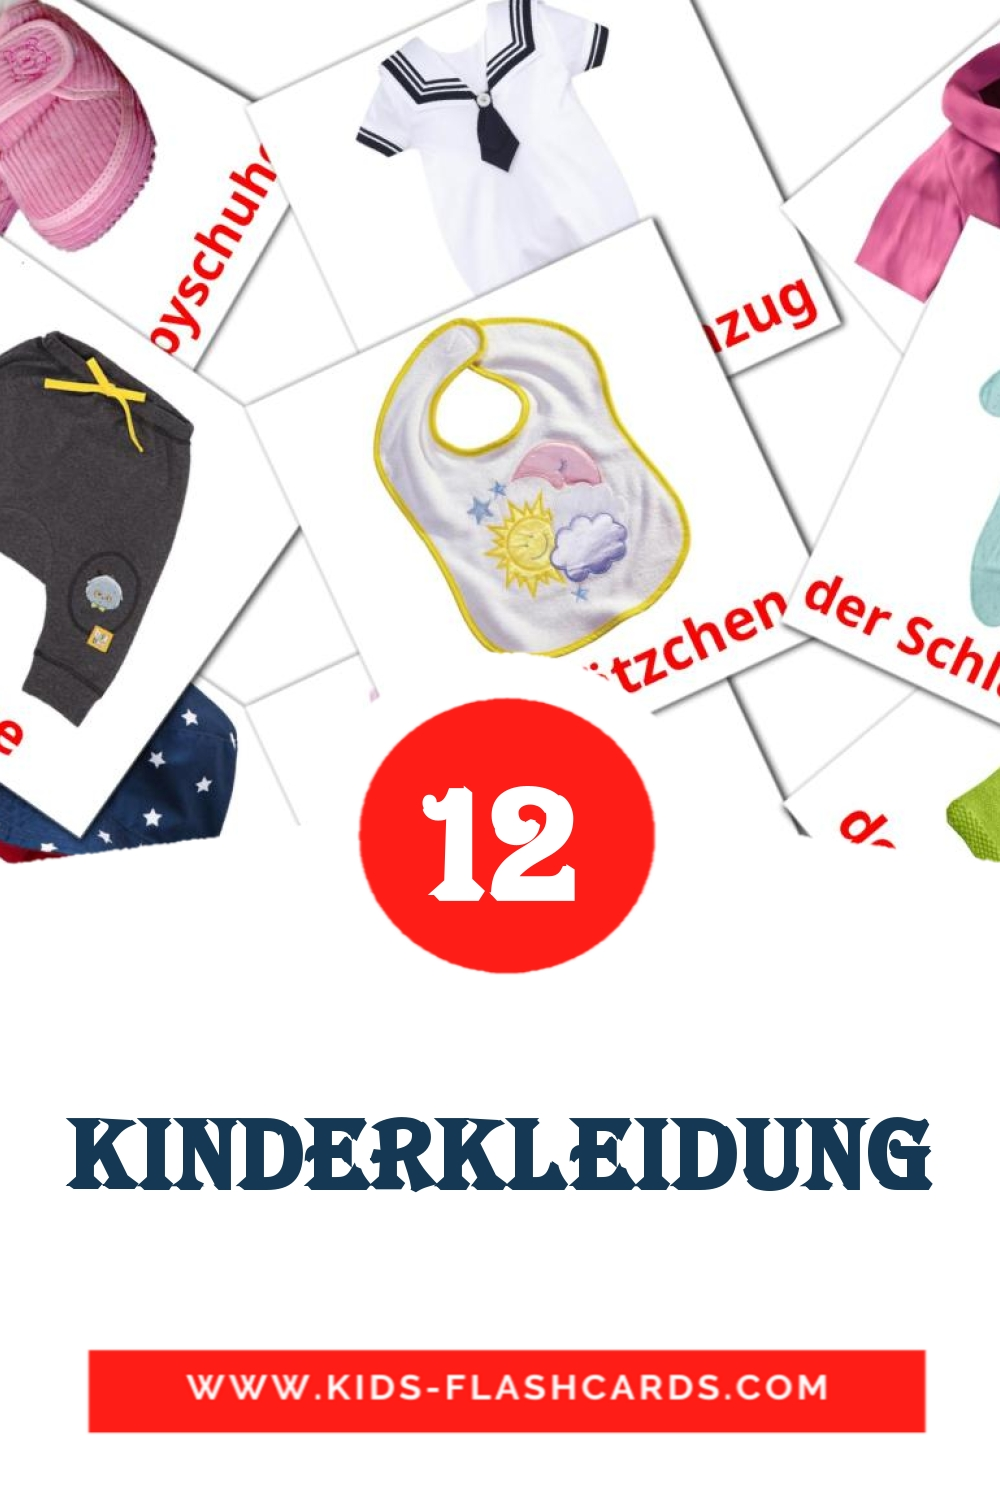 12 Die Kinderkleidung  Picture Cards for Kindergarden in german